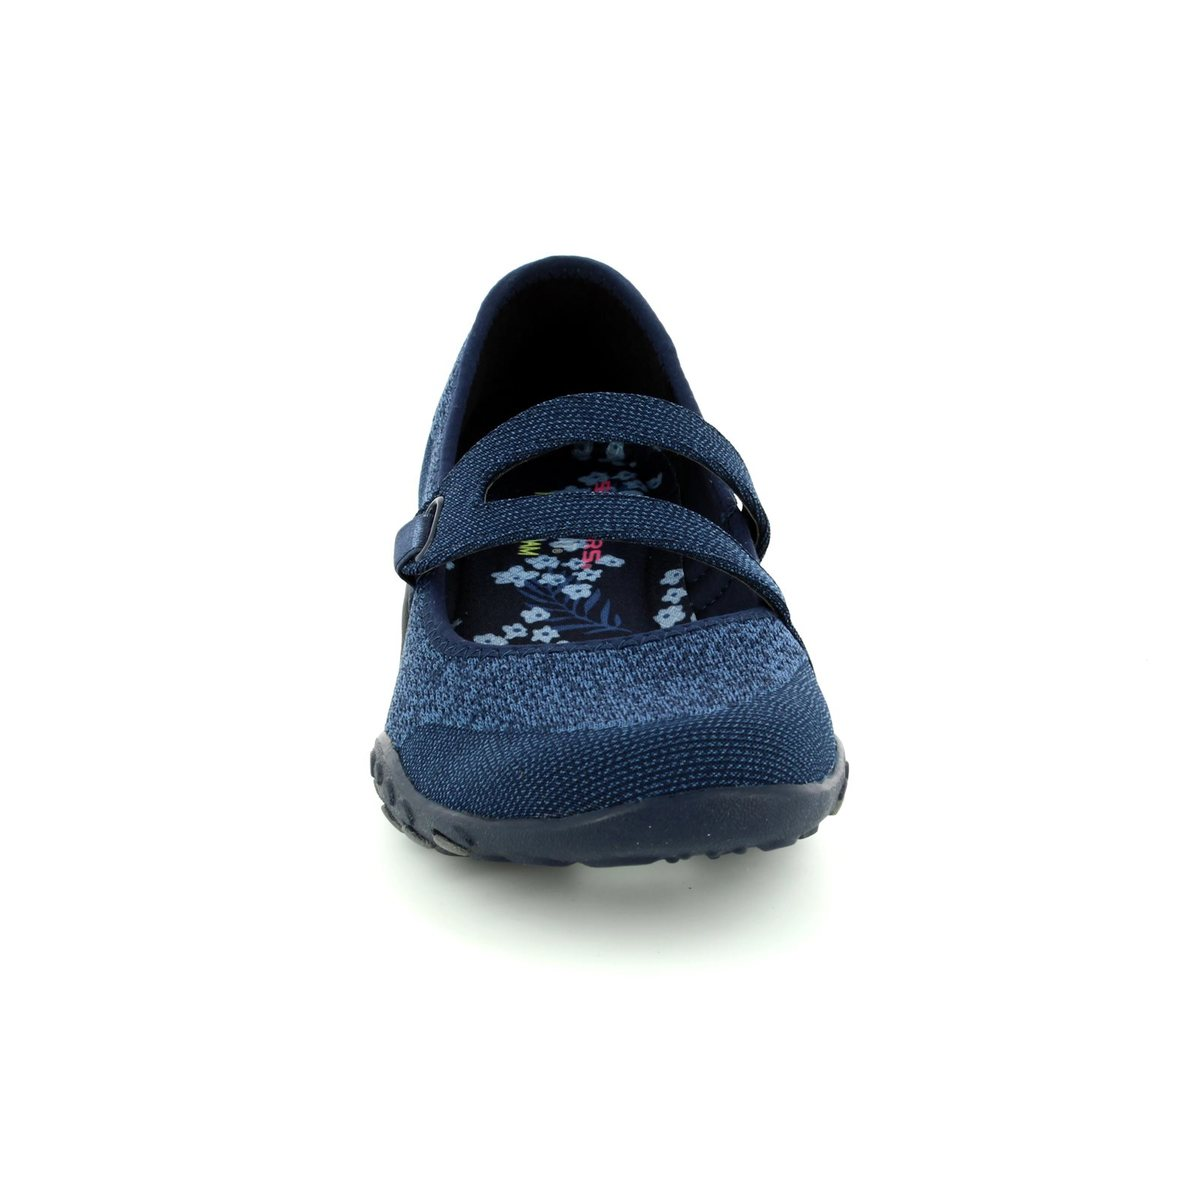 c803ff0d2579 Skechers Lucky Lady 23005 NVY Navy trainers